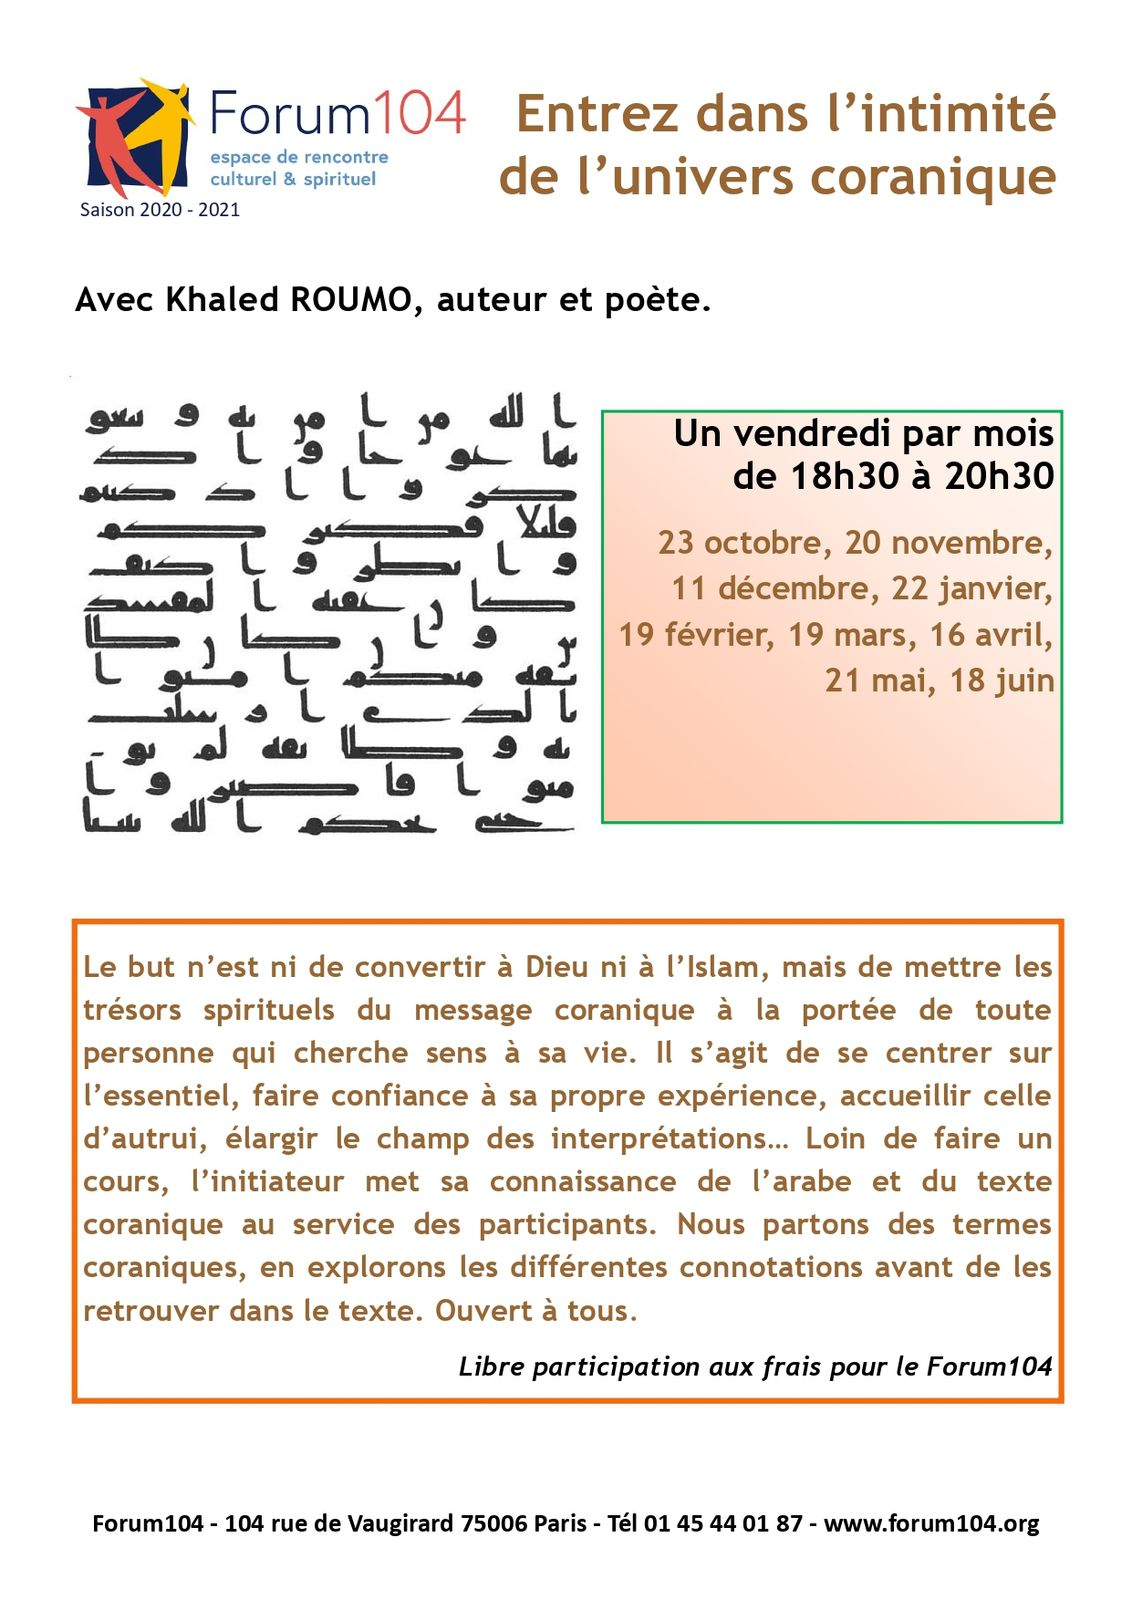 SERIC 2020, 20 novembre, 75005, Paris : Univers coranique